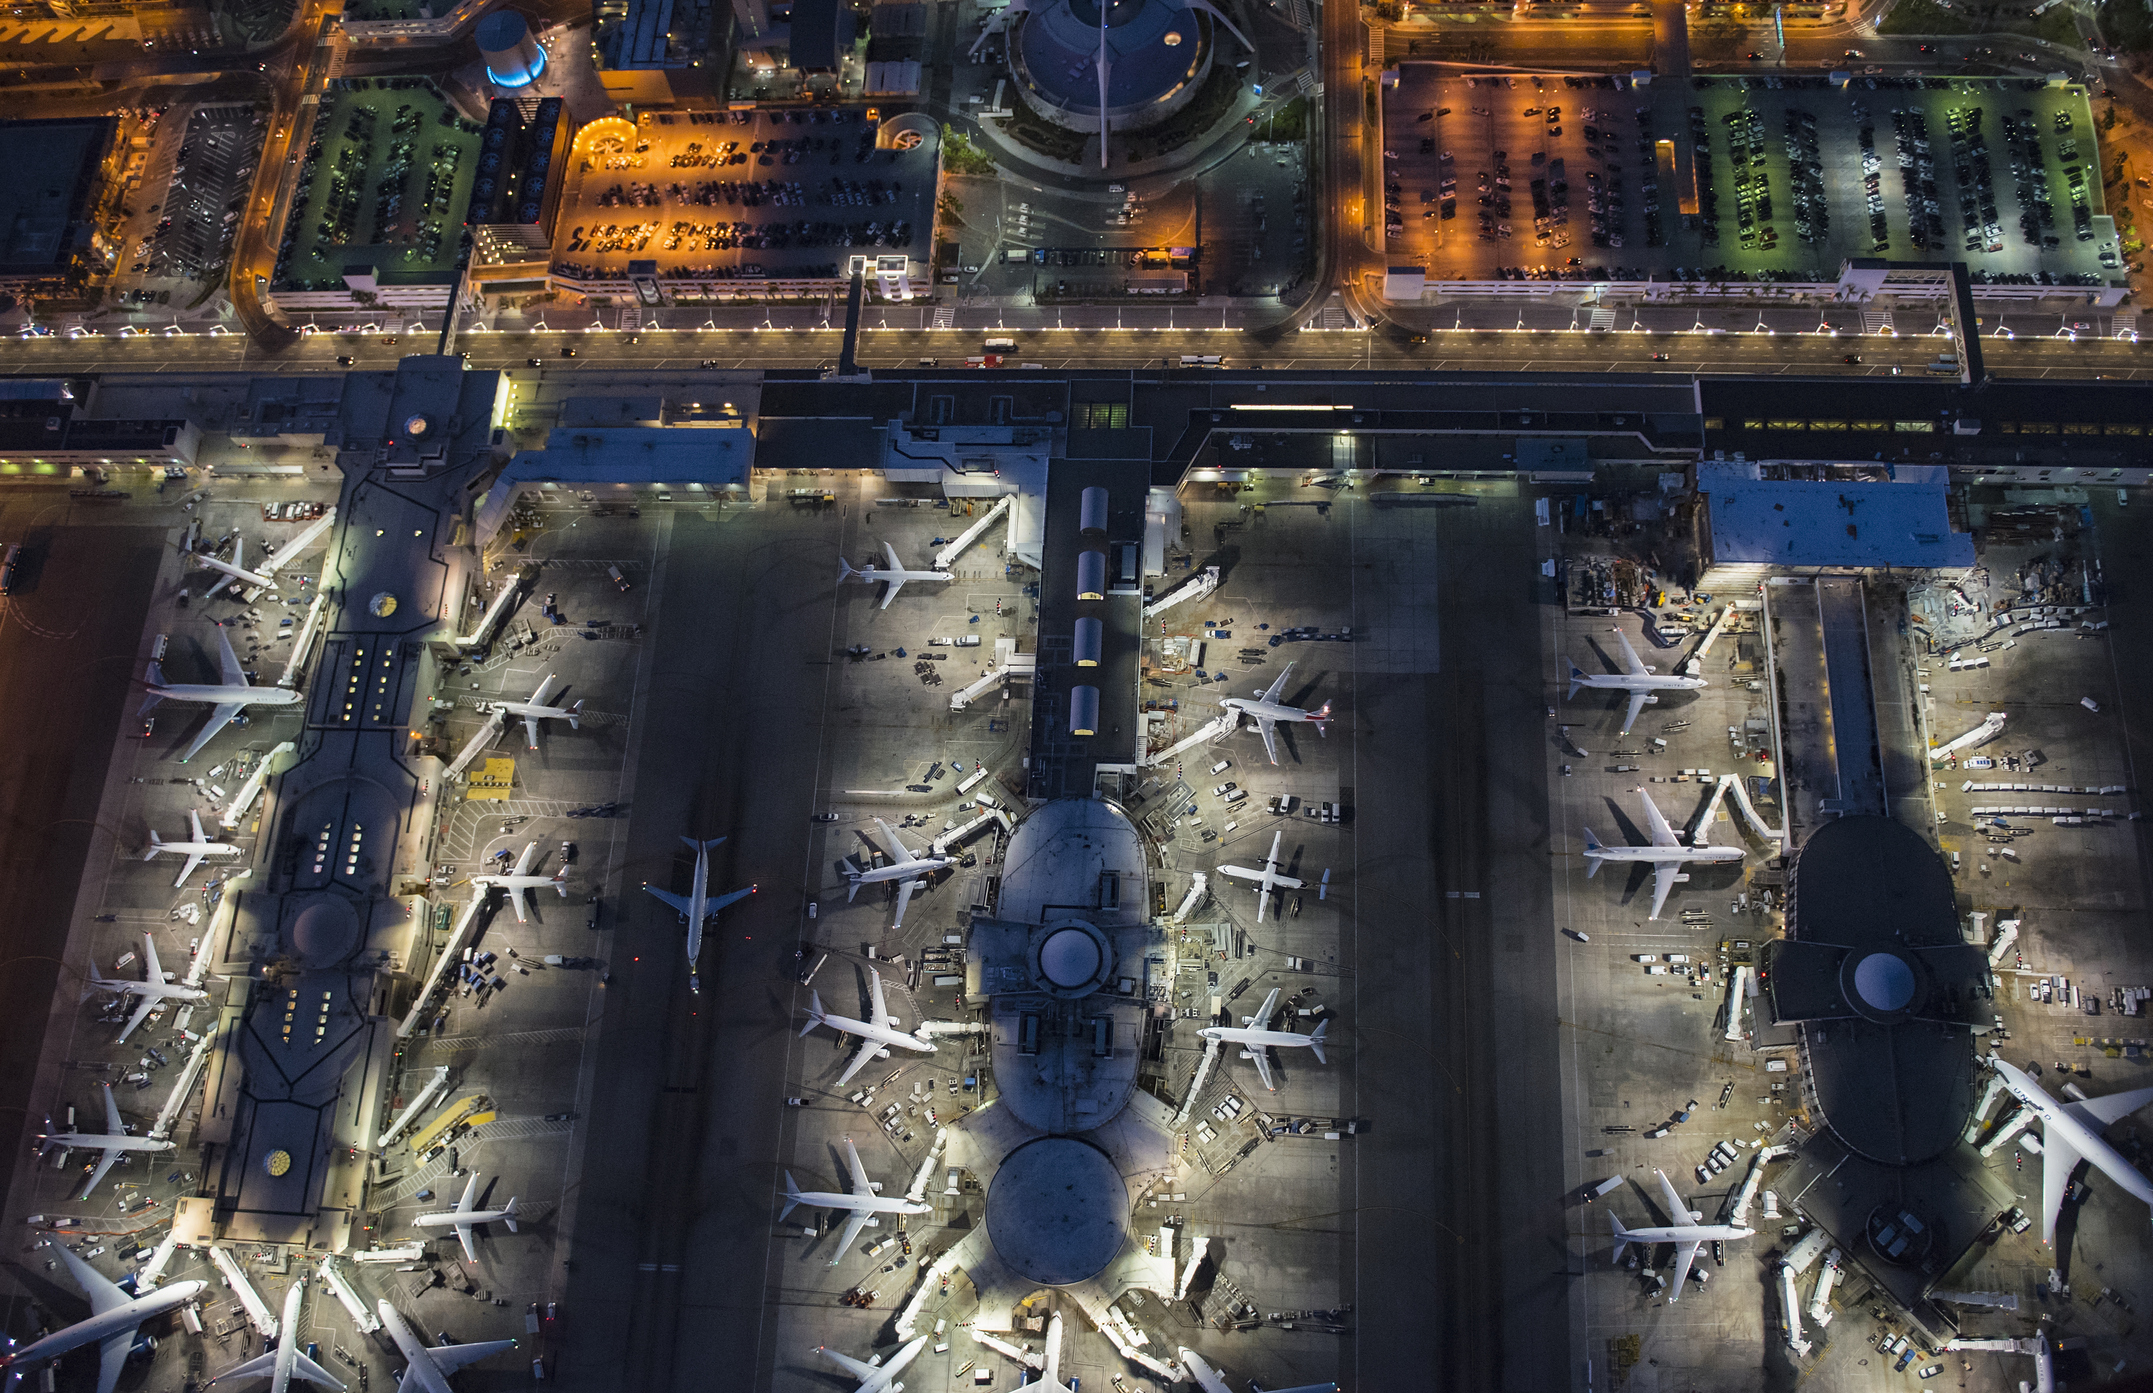 LAX to offer free bus and train rides for passengers flying into LAX and expanded FlyAway service during Thanksgiving week